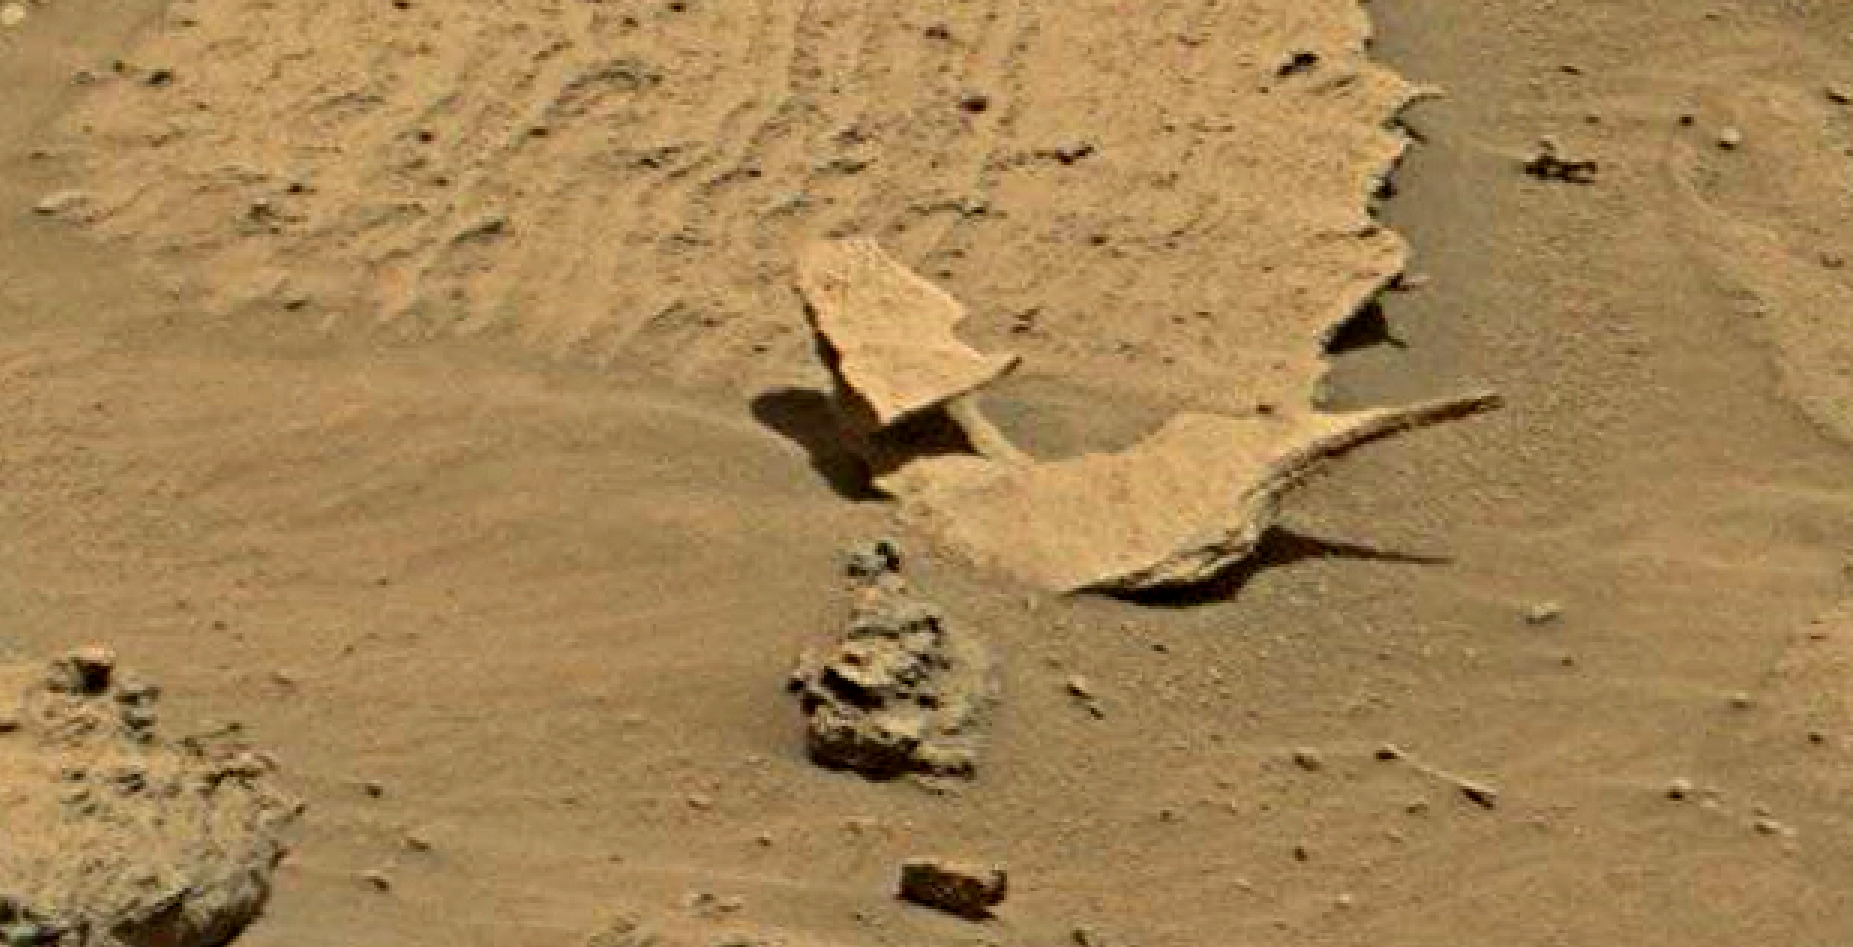 mars sol 1346 anomaly-artifacts 7 was life on mars